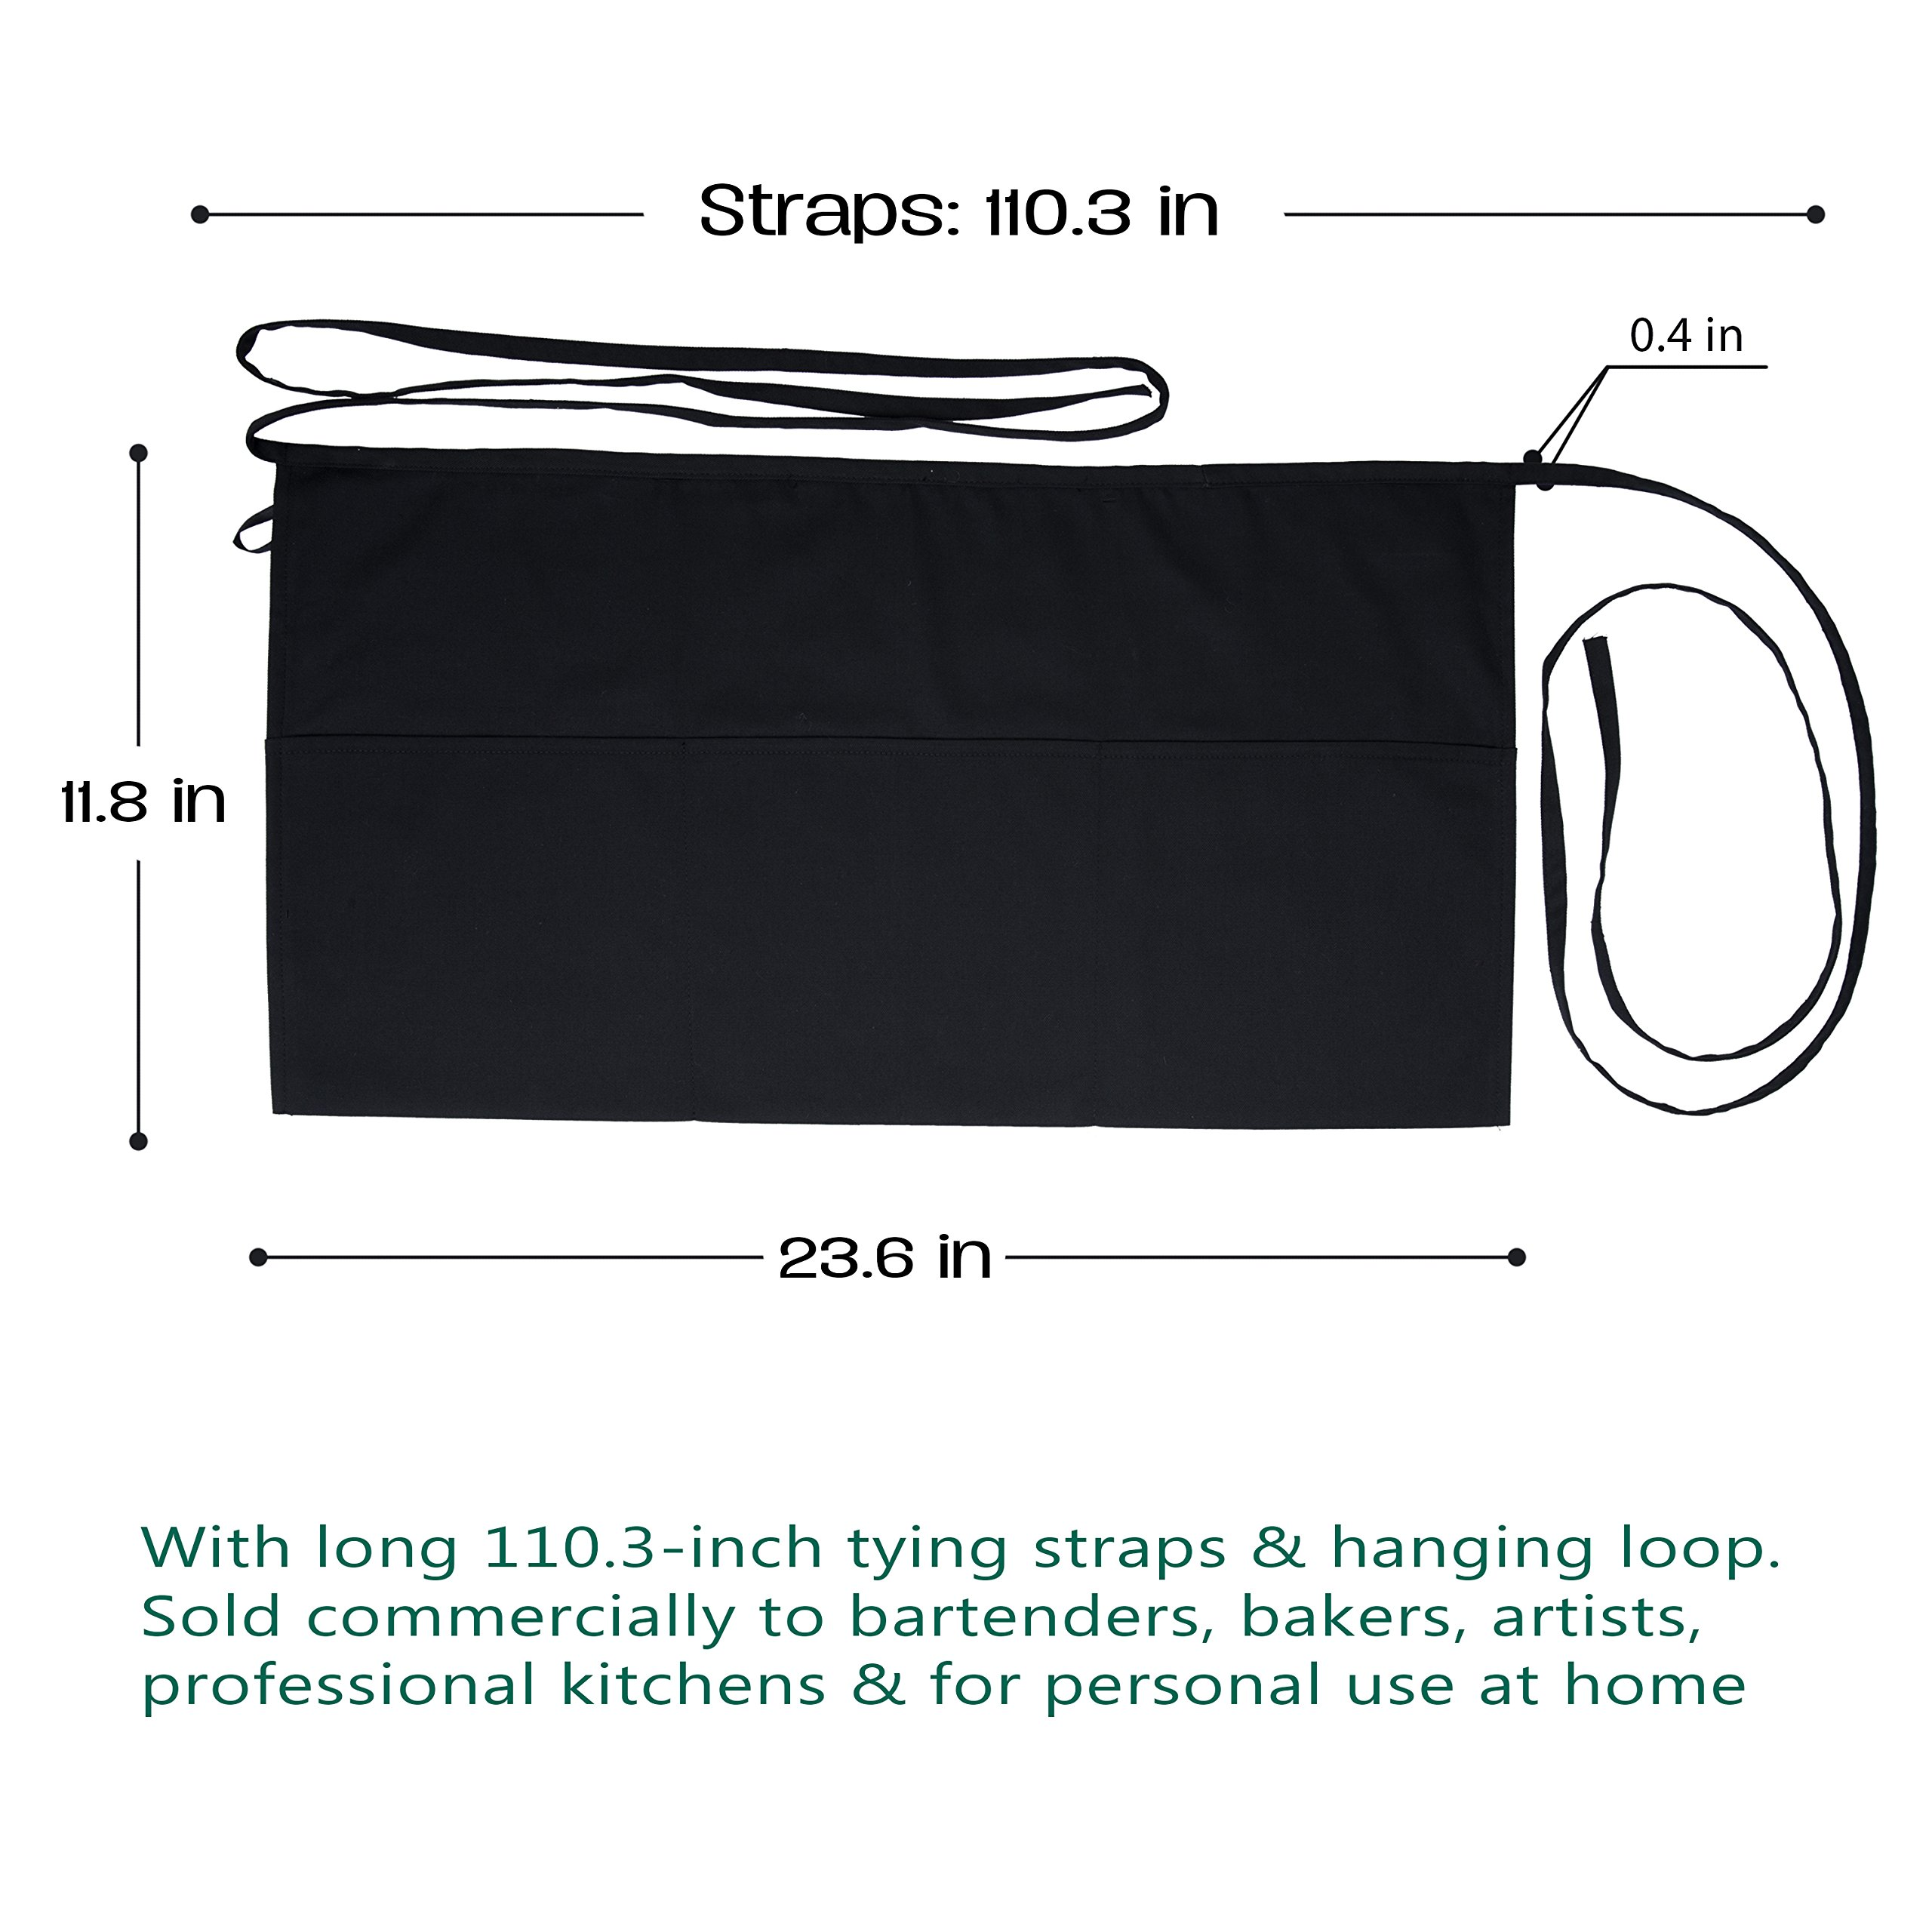 "Nezzon Waitress Apron with Pockets – 5 Pack with 3 Pockets: 7.9x6.5"" –Commercial Grade Weave 35% Cotton & 65% Polyester in Black – Professionally Hemmed Edges to Last – Machine Wash, Iron, Quick Dry"